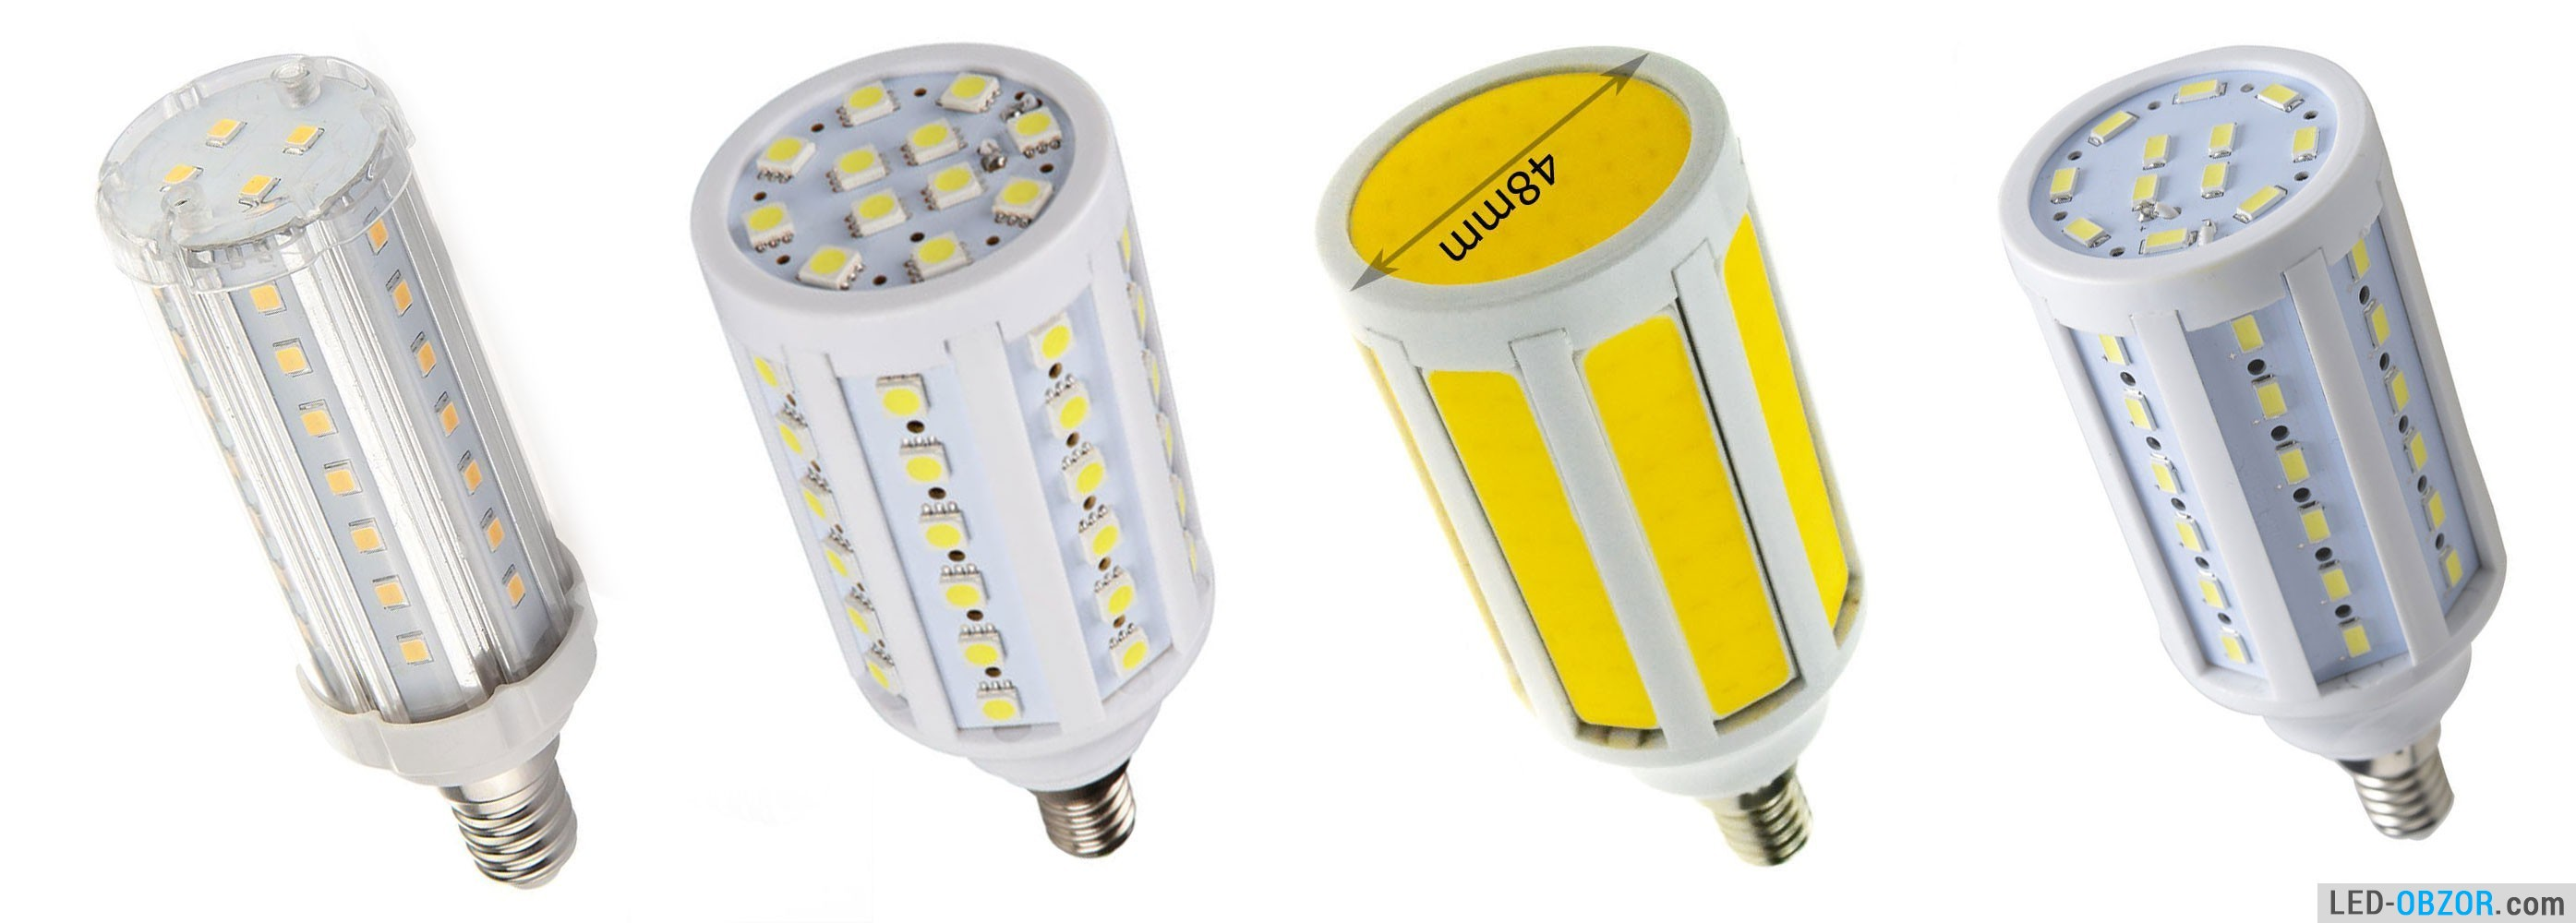 60 E14 Lumen Choose The Lamp For Led Bulbs